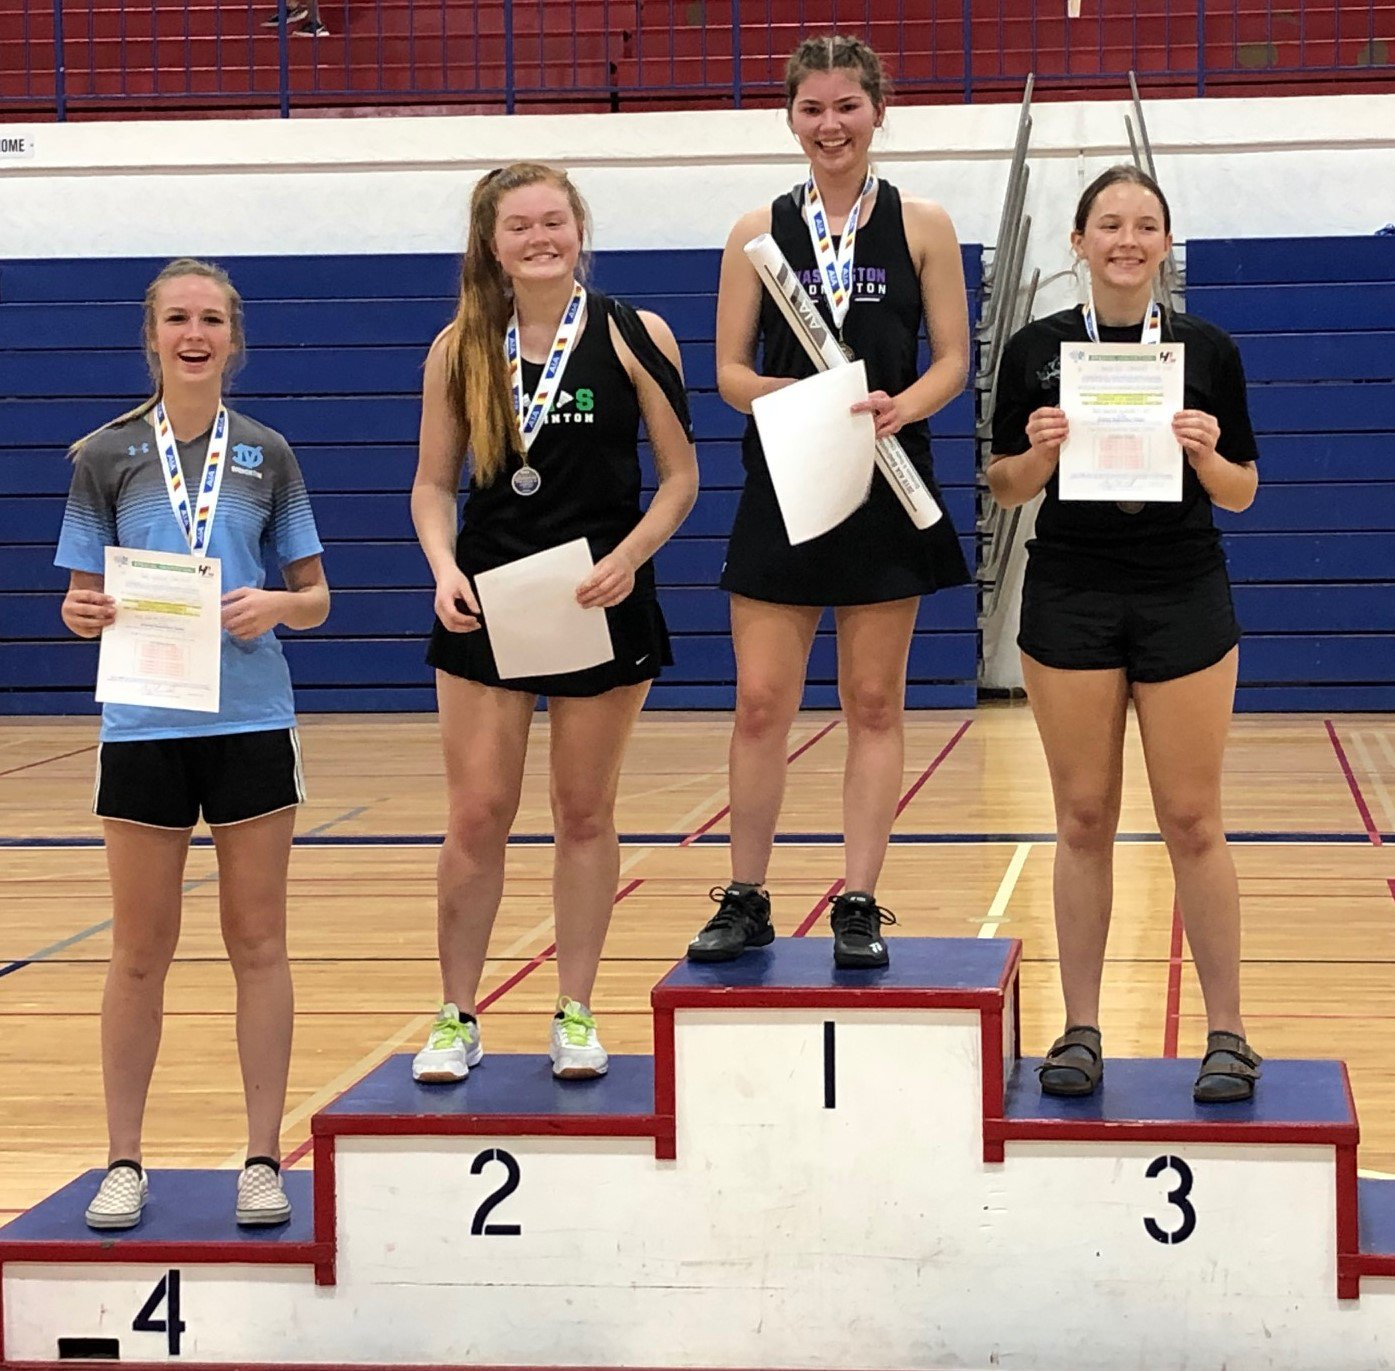 Deer Valley High School senior Sara Roskelley stands on the podium after the 2019 Division II singles championship Oct. 26 at Independence High School in Glendale. She placed fourth.  Badminton is one of the four sports the Skyhawks senior has earned a varsity letter in.